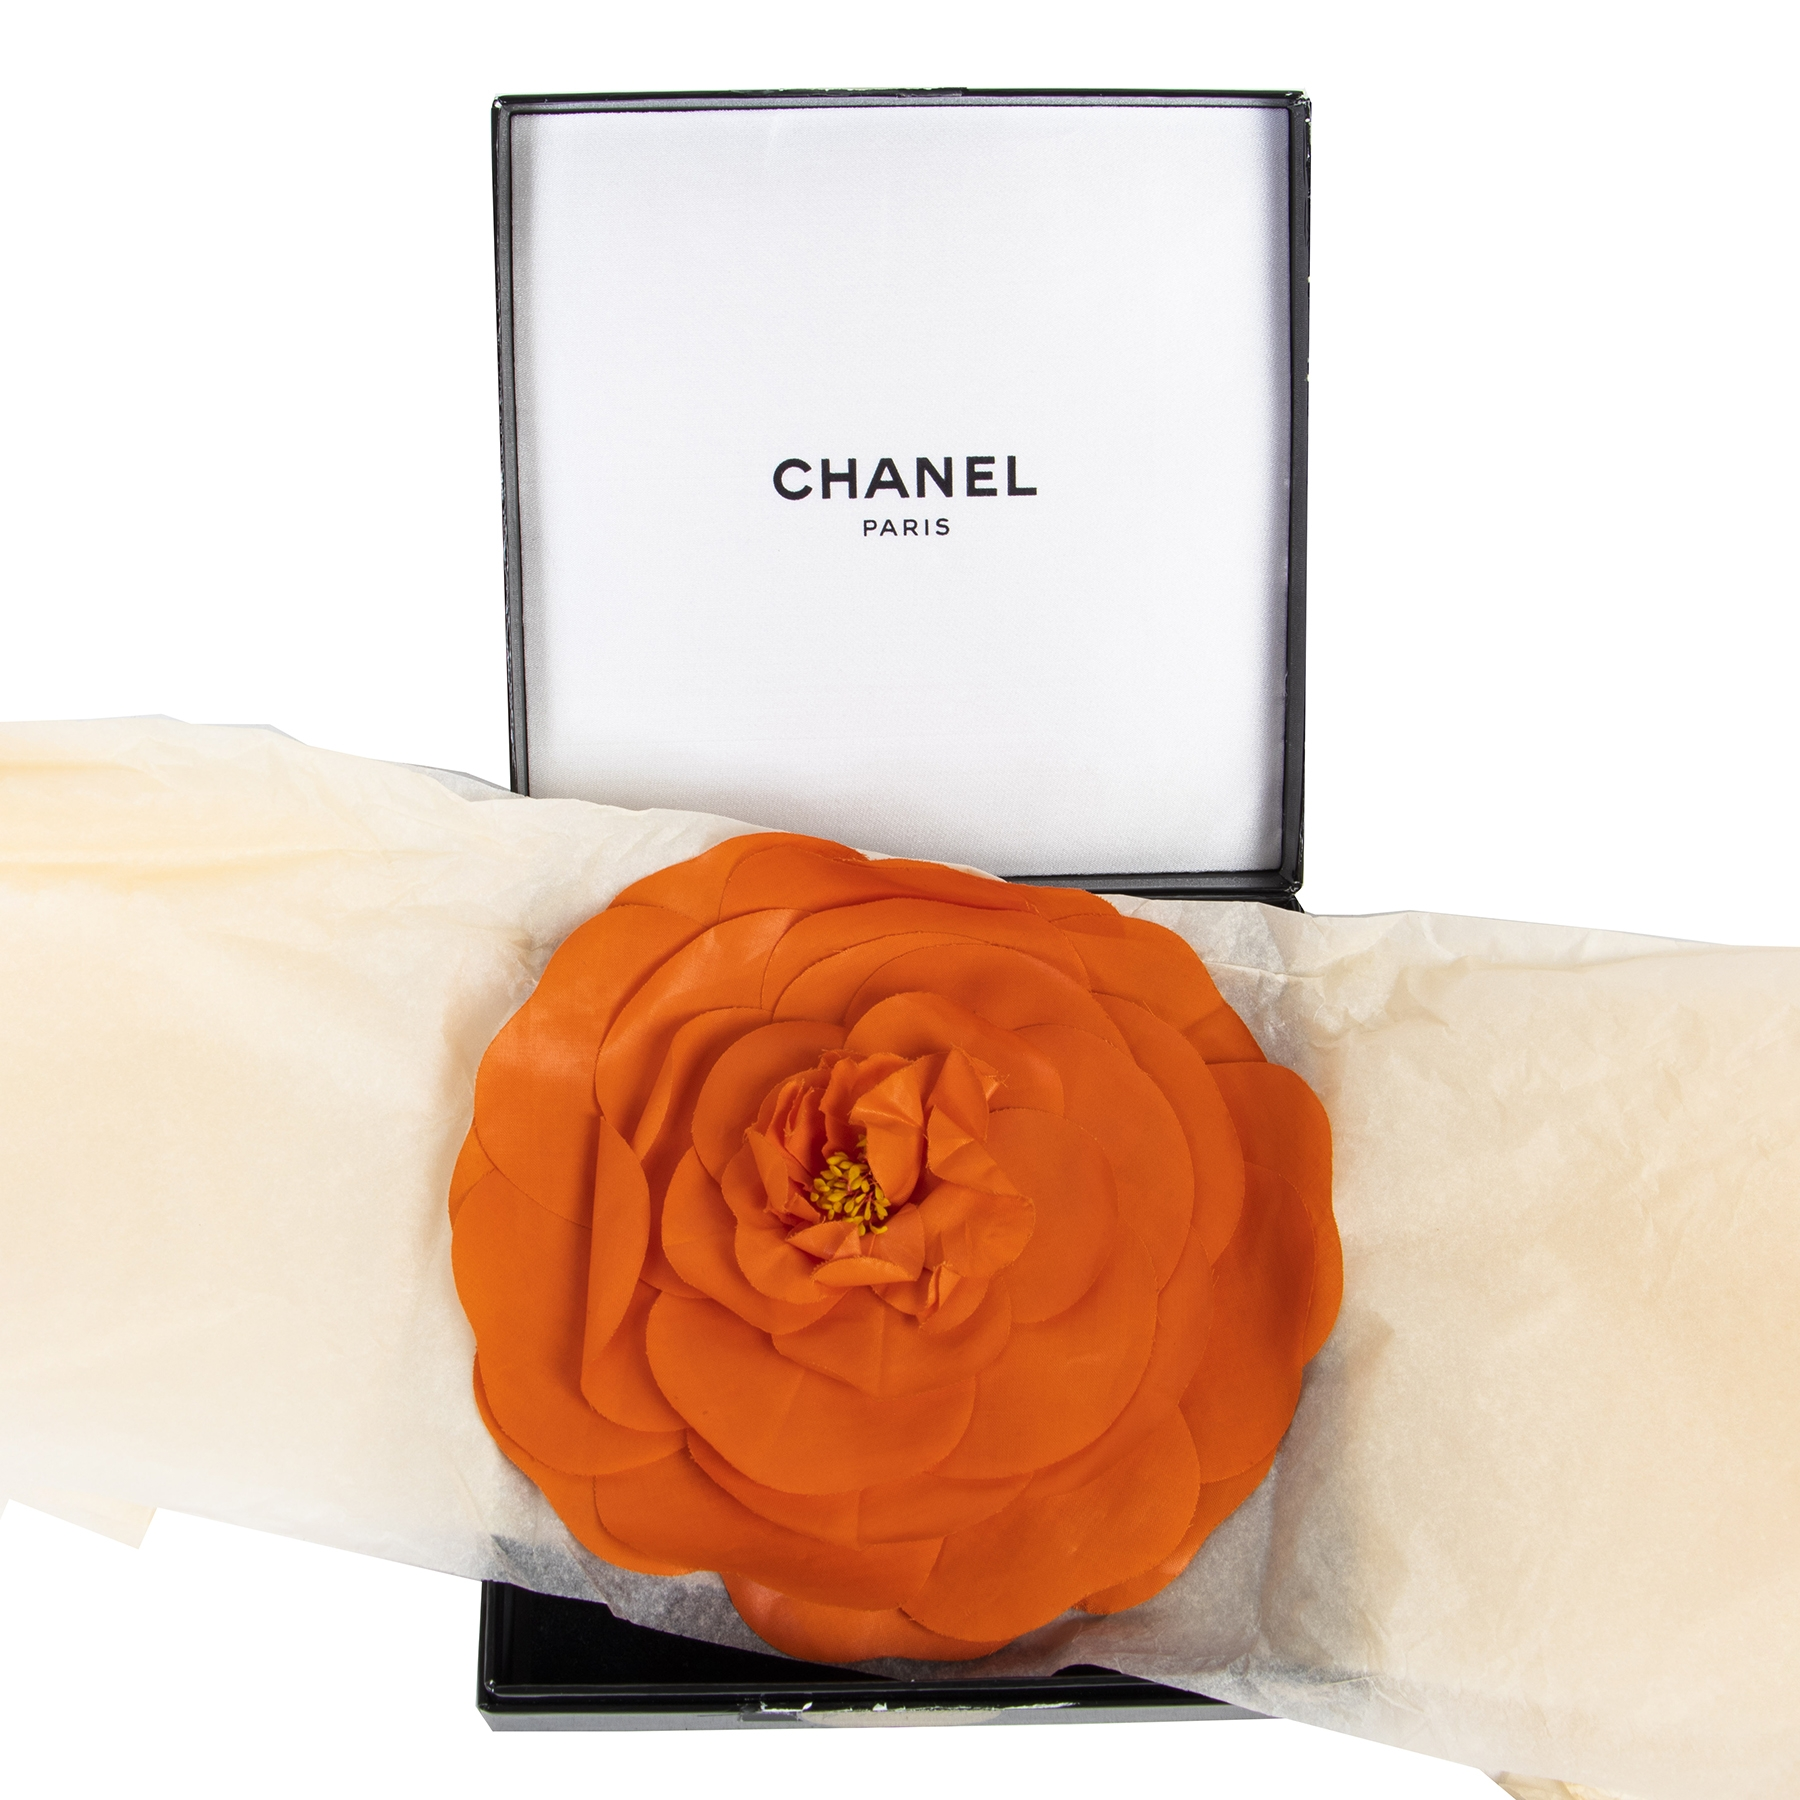 Authentic second-hand vintage Chanel Orange Camellia Flower Brooch Pin buy online webshop LabelLOV